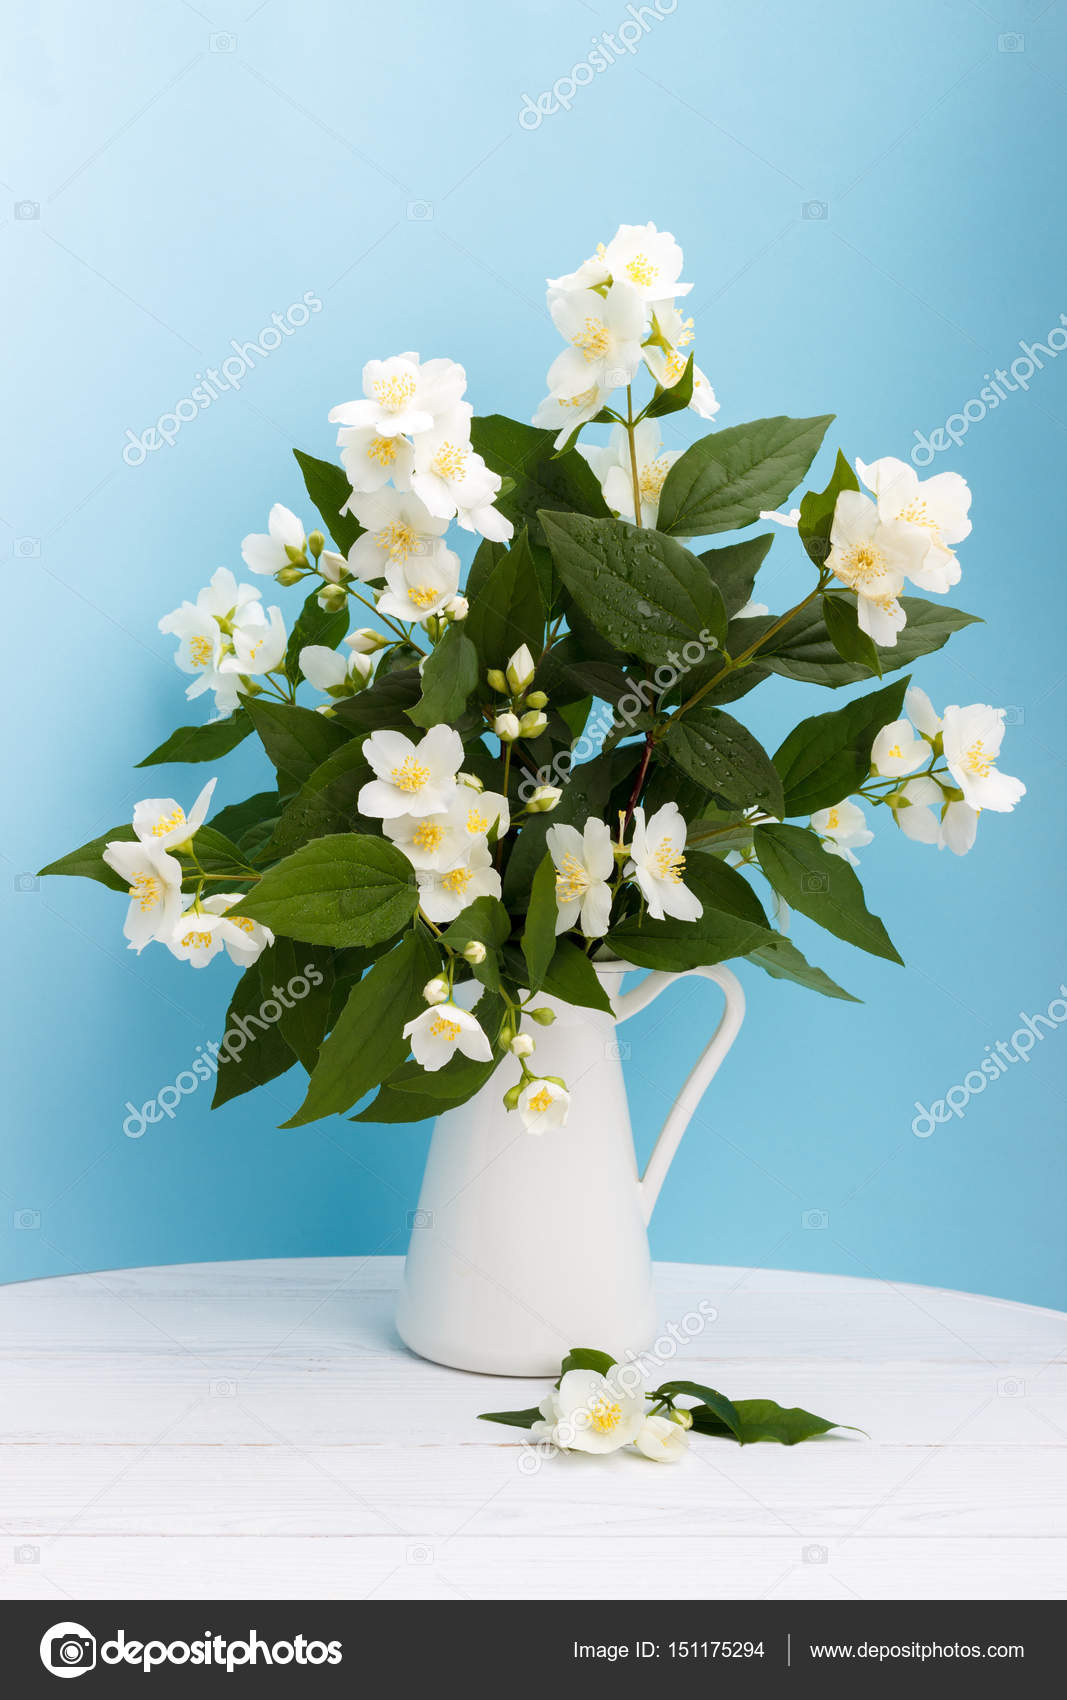 Fresh jasmine flowers in a vase stock photo lanam 151175294 fresh jasmine flowers in a vase stock photo izmirmasajfo Image collections